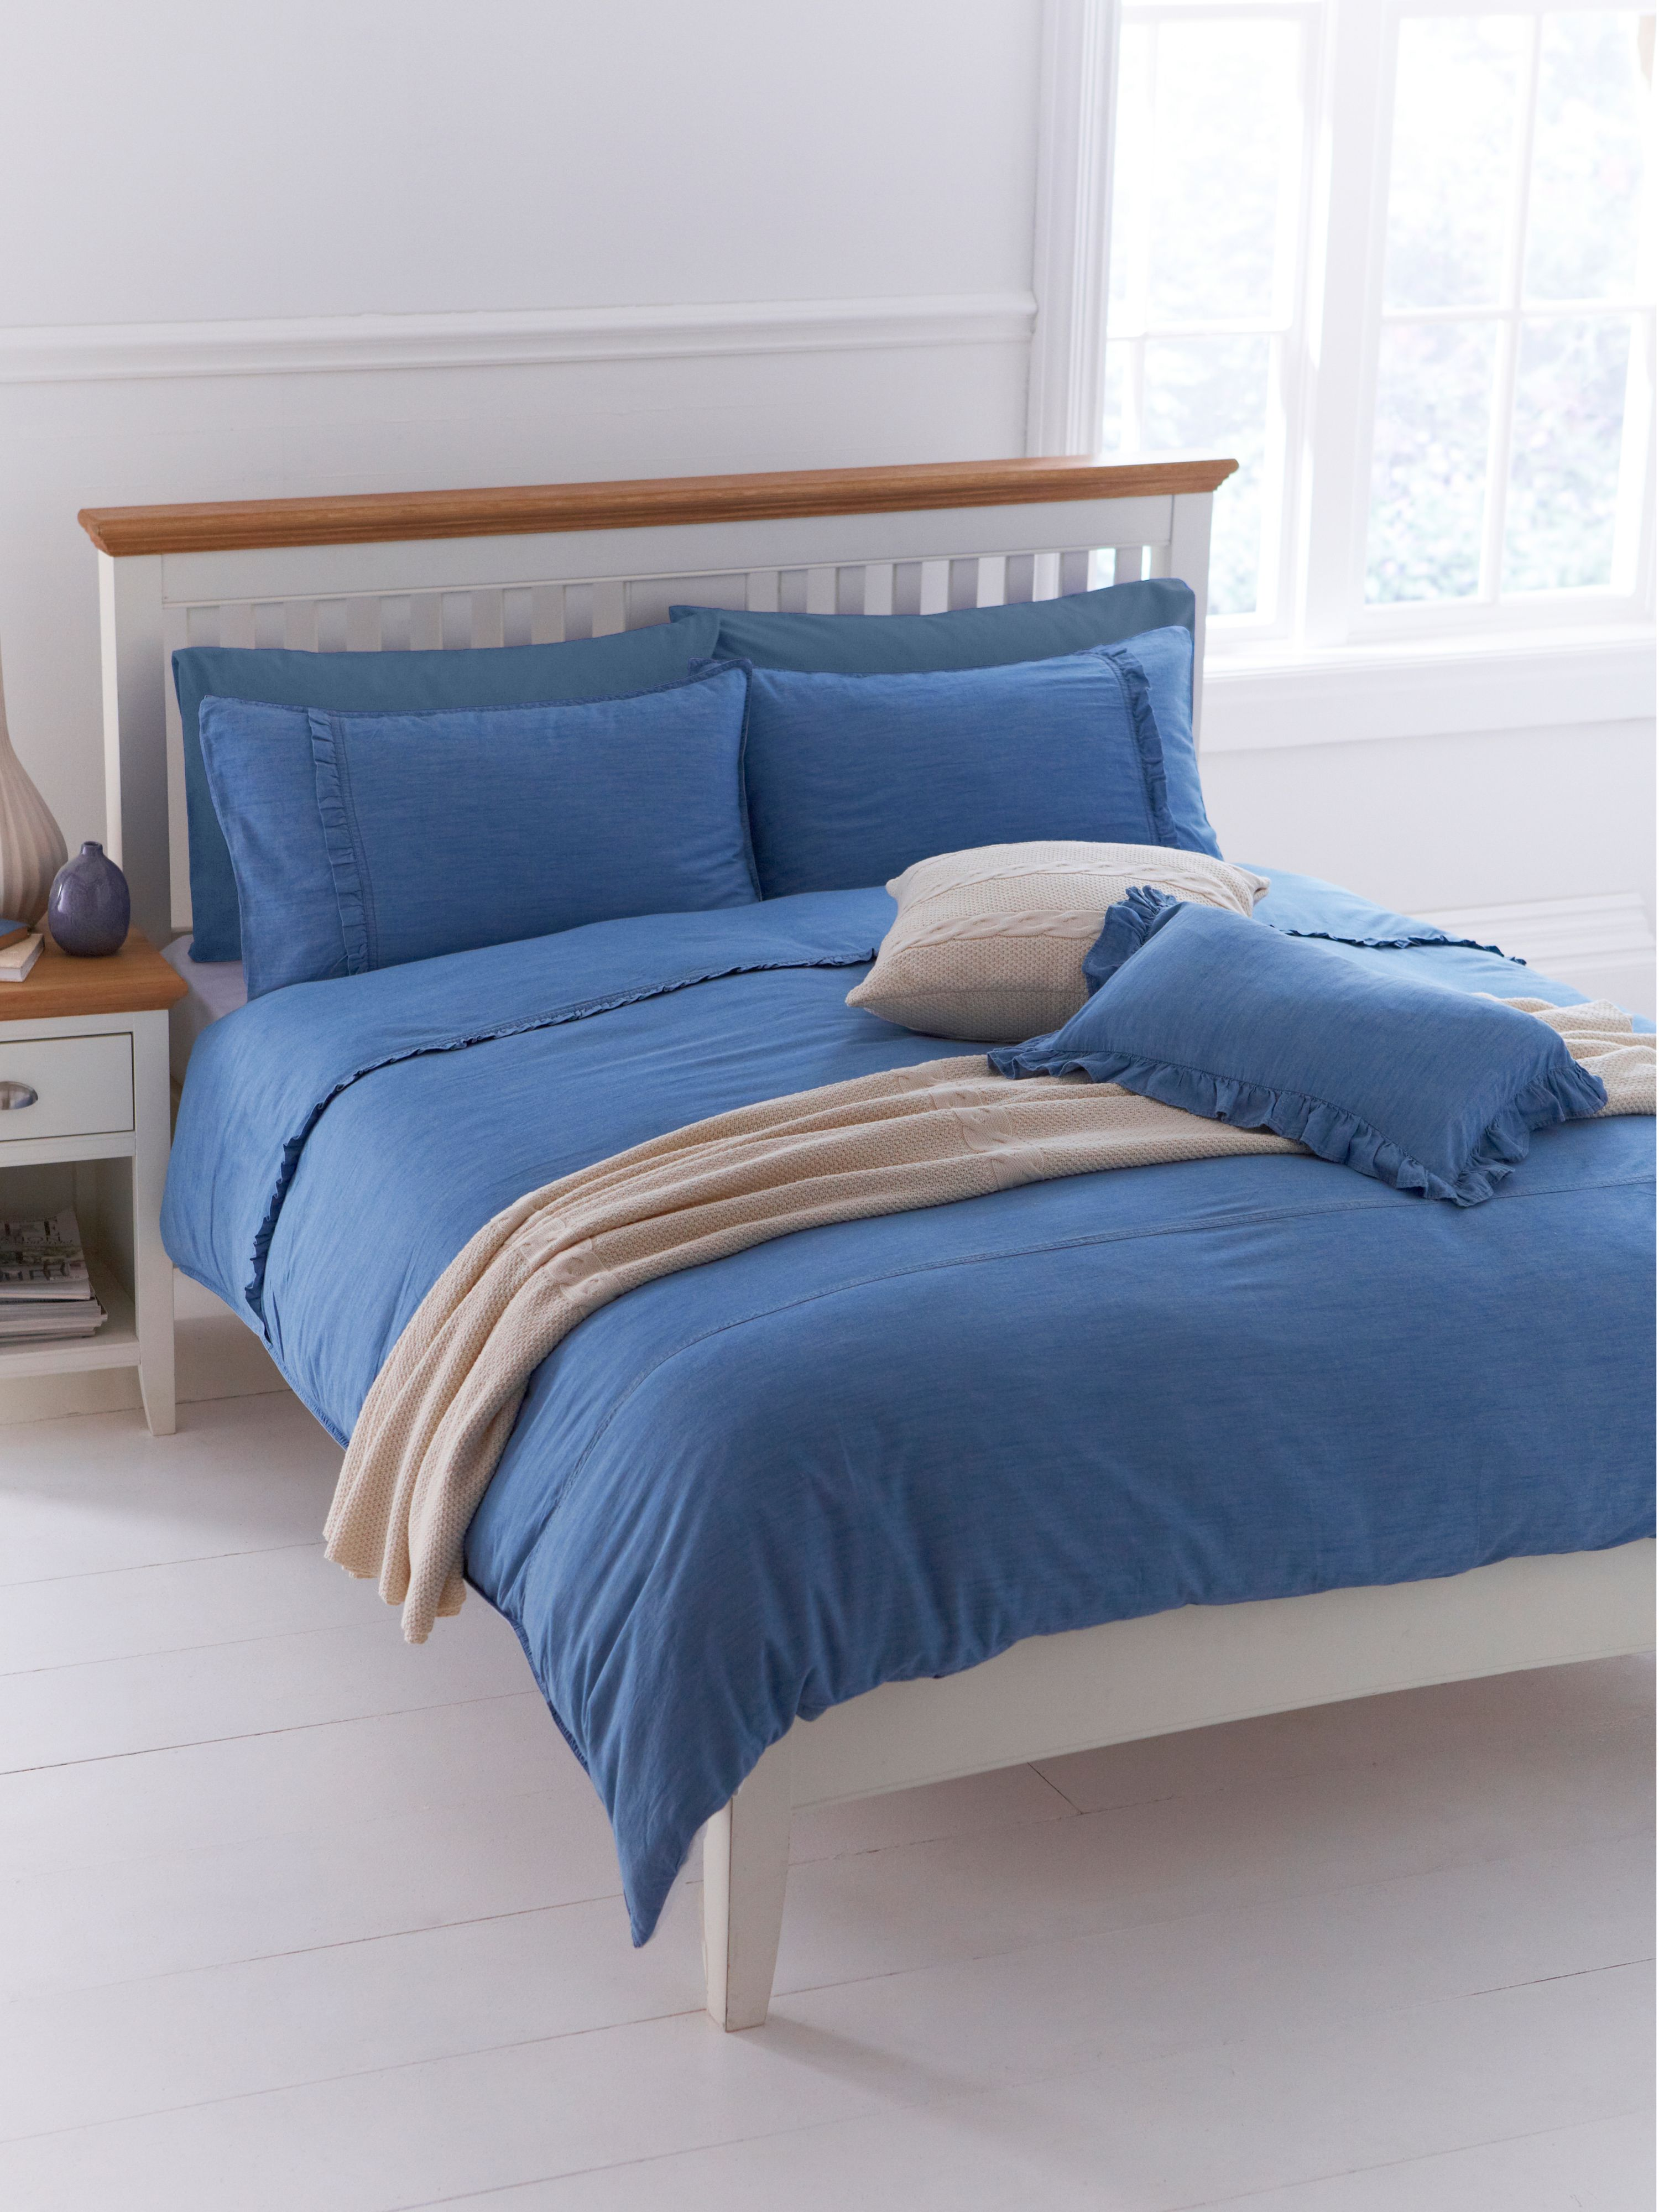 Pretty Denim double duvet cover set